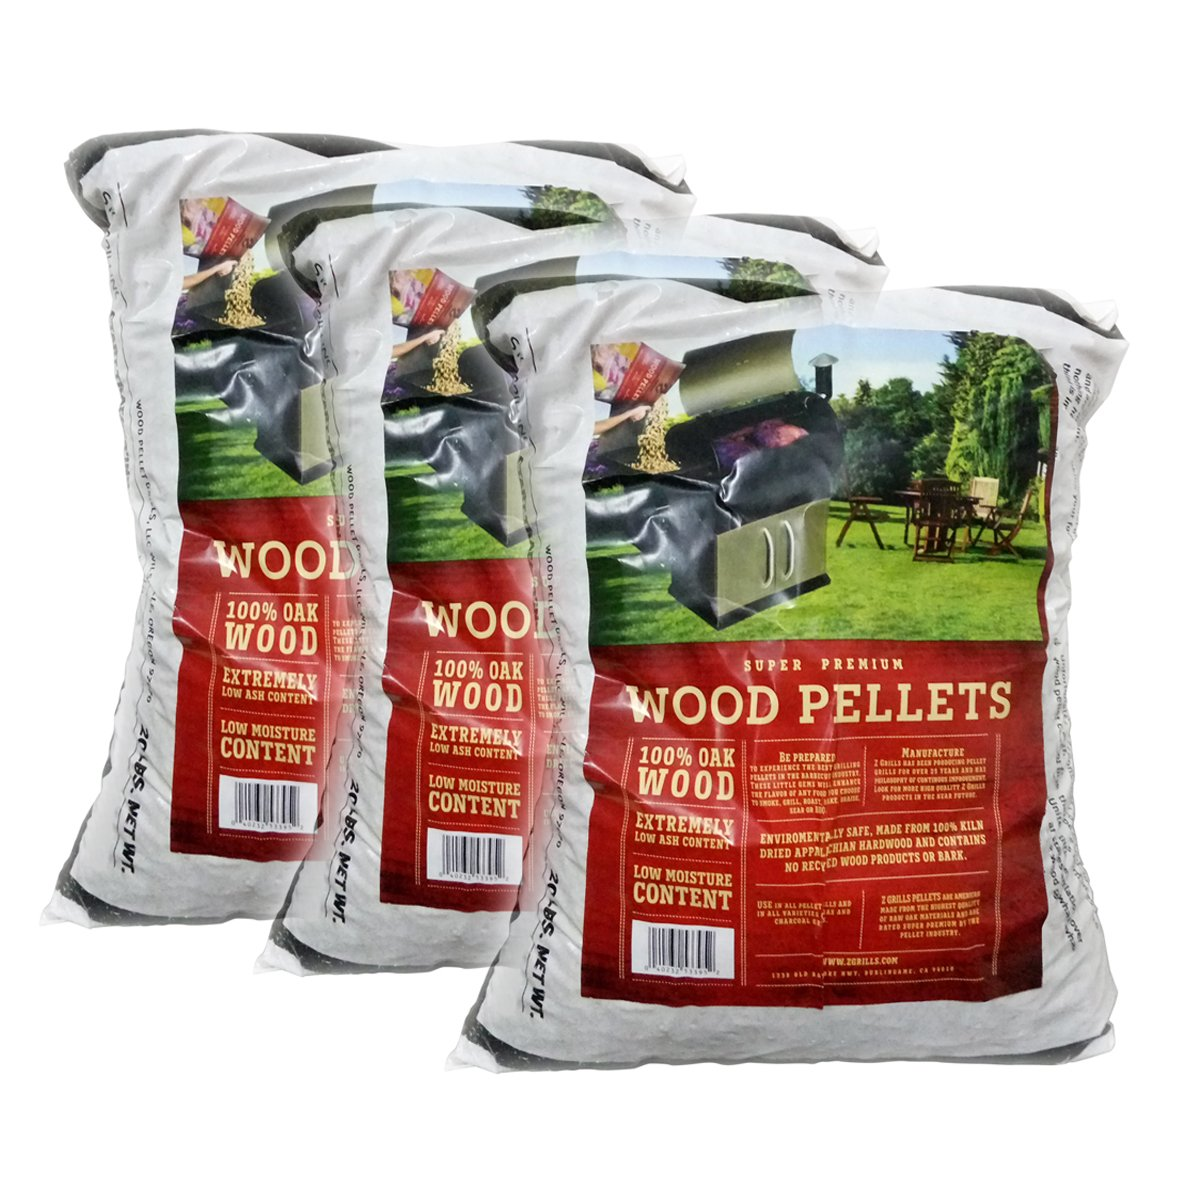 Z GRILLS Premium BBQ Wood Pellets Grilling Smoking Cooking Oak Hardwood Pellets,20LB Per Bag Made in USA (3)